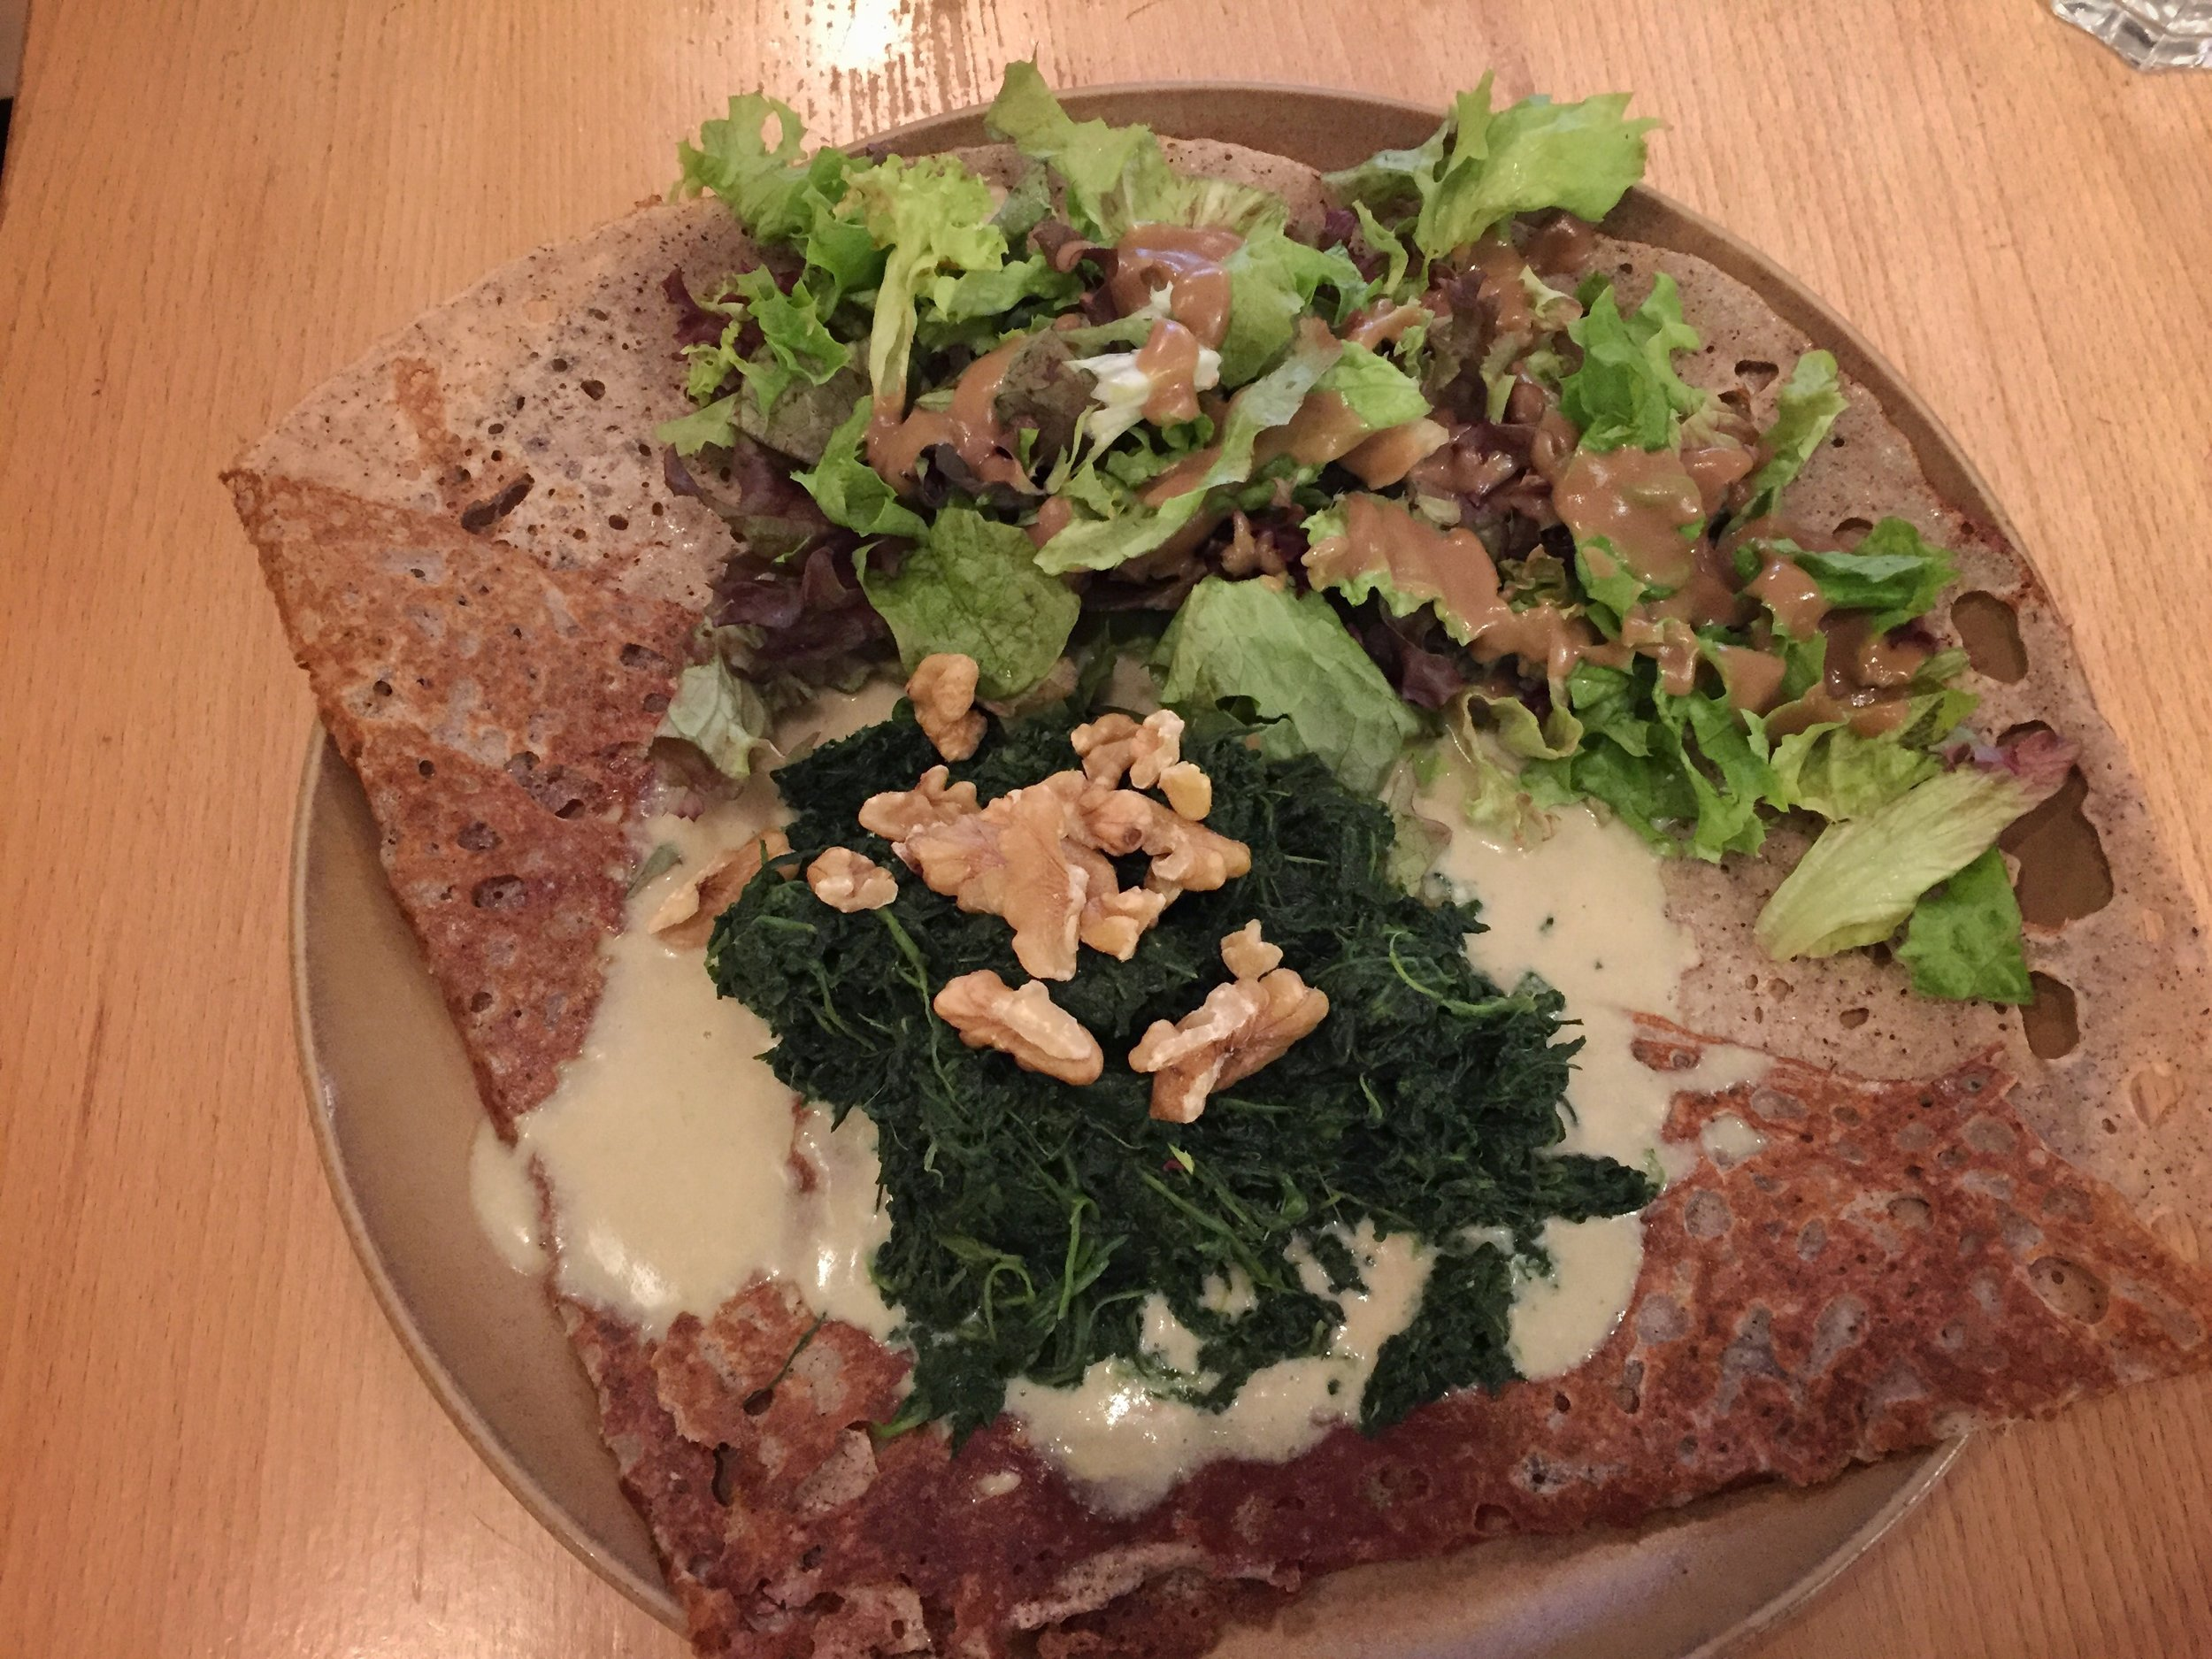 Camembert & spinach crepe at Haus der Bretagne (Hamburg)